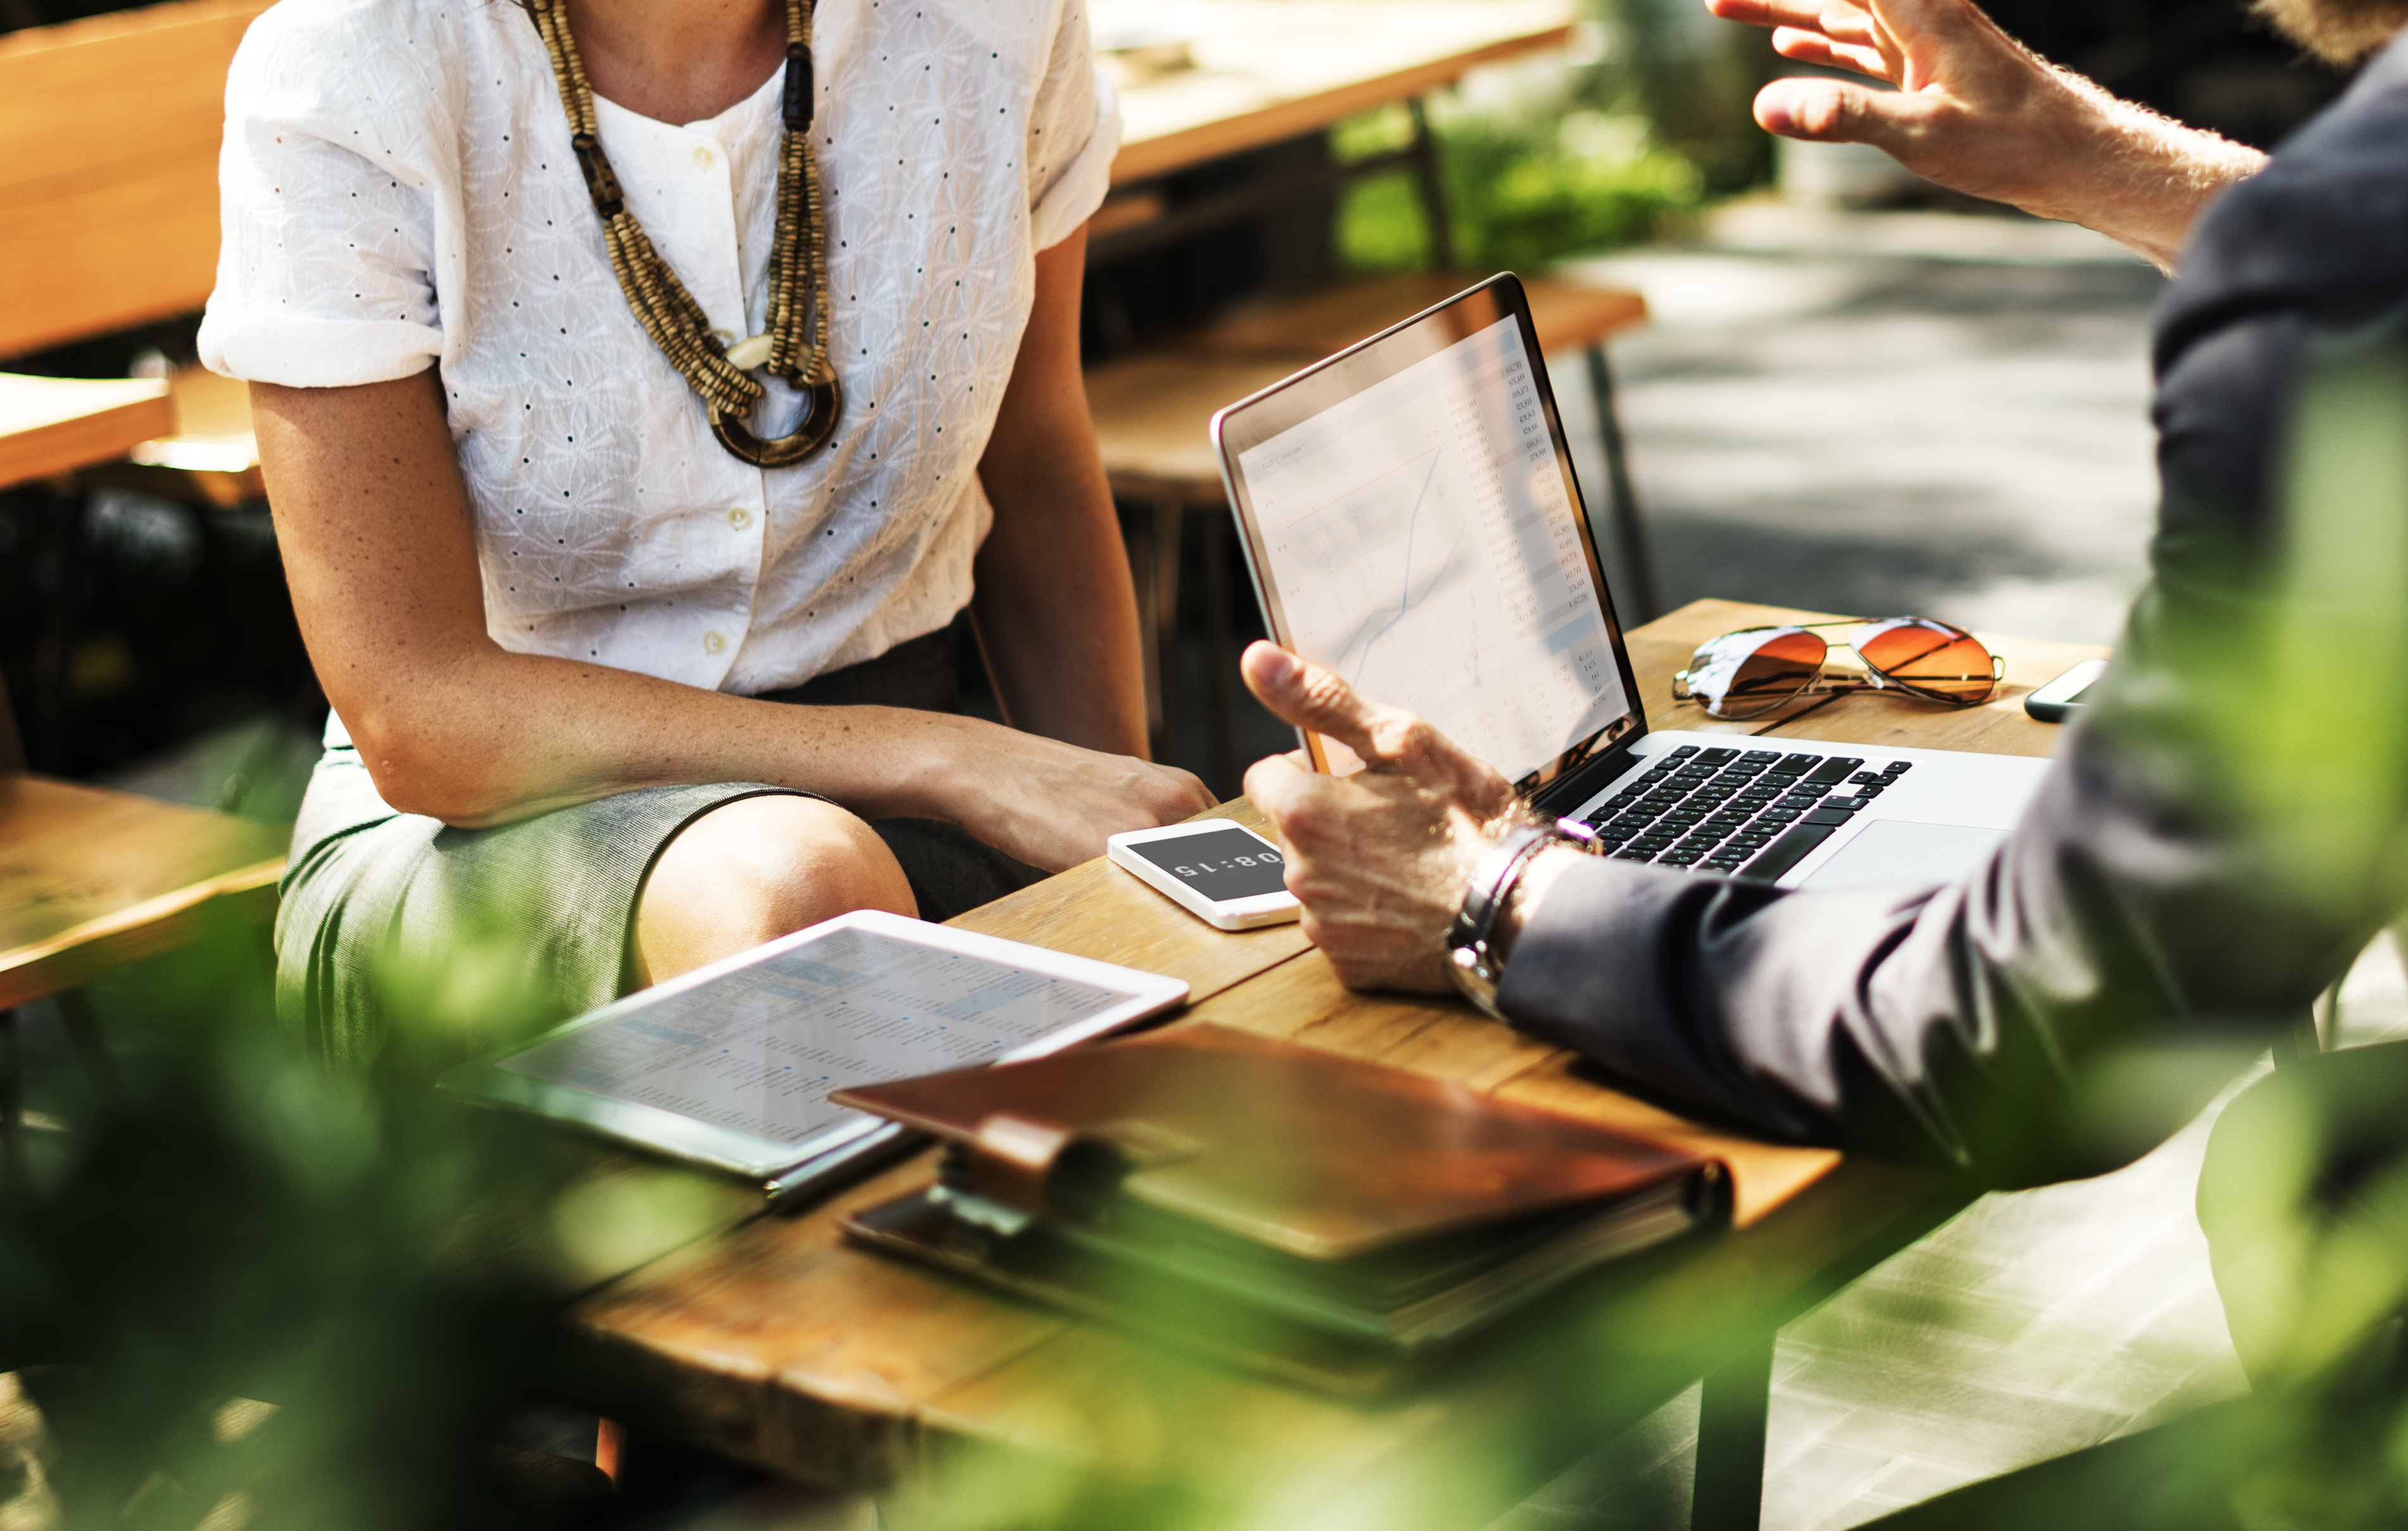 7 Ways to Know If Life Coaching Will Work for You